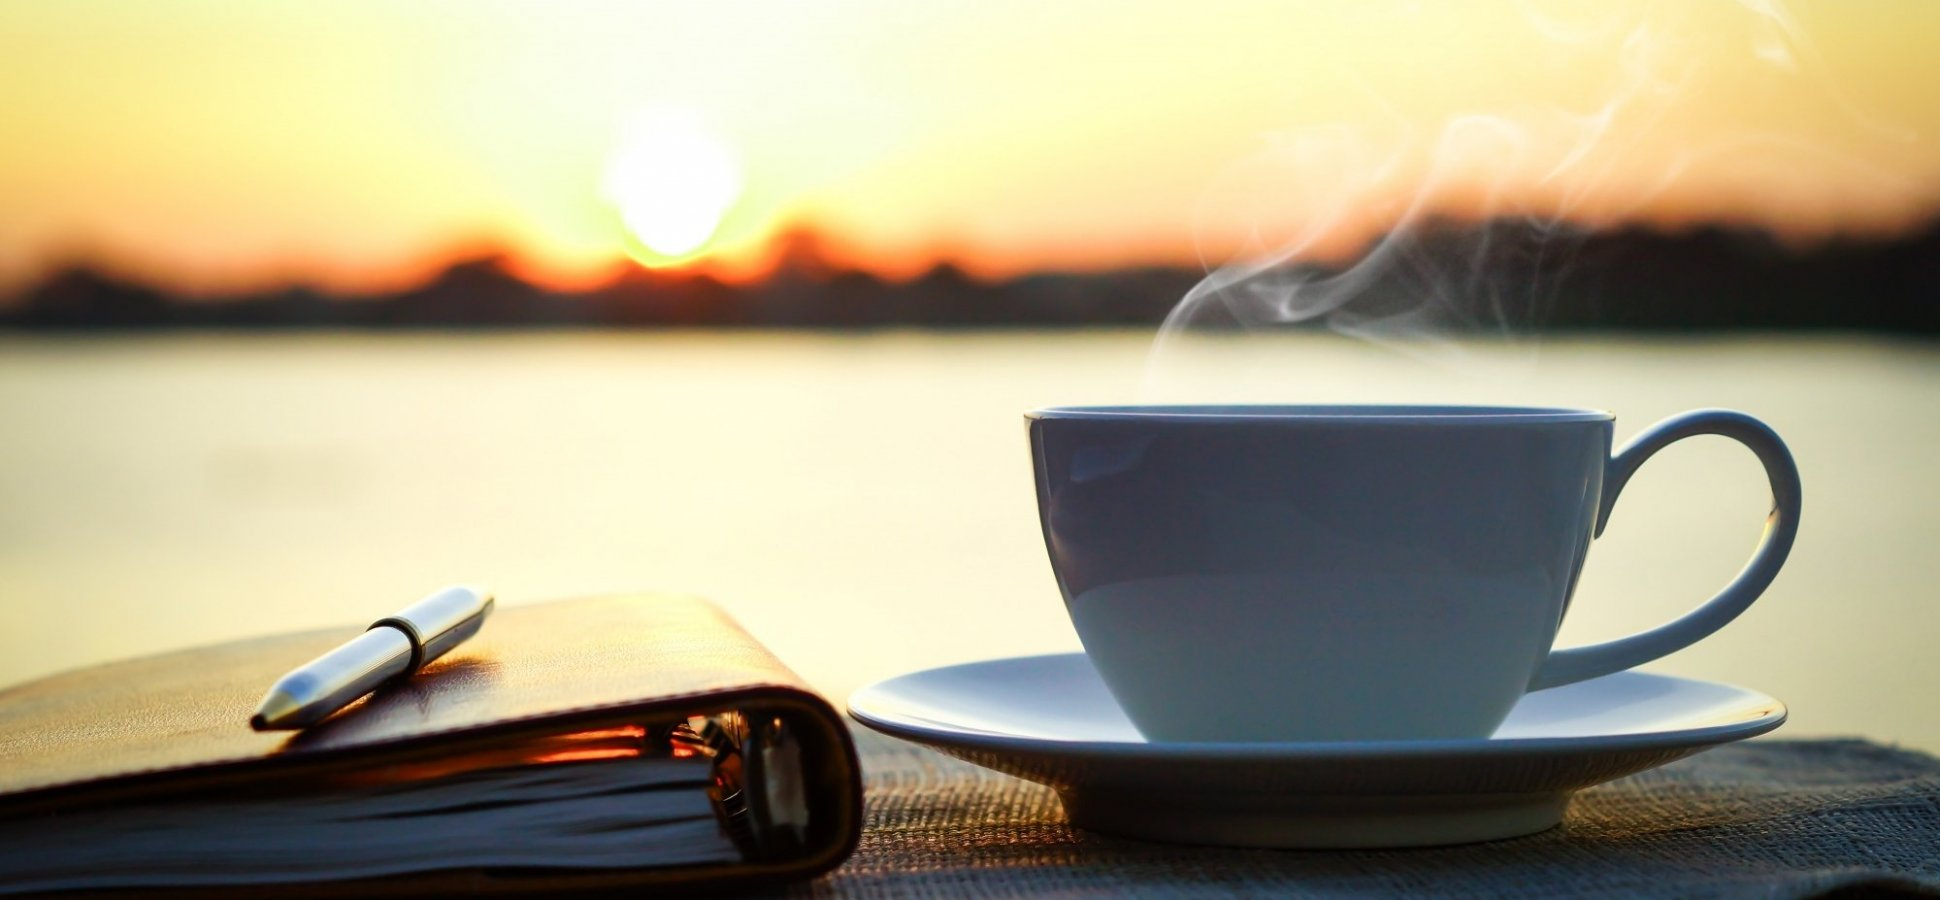 50 Ideas to Help You Design Your Perfect Morning Routine